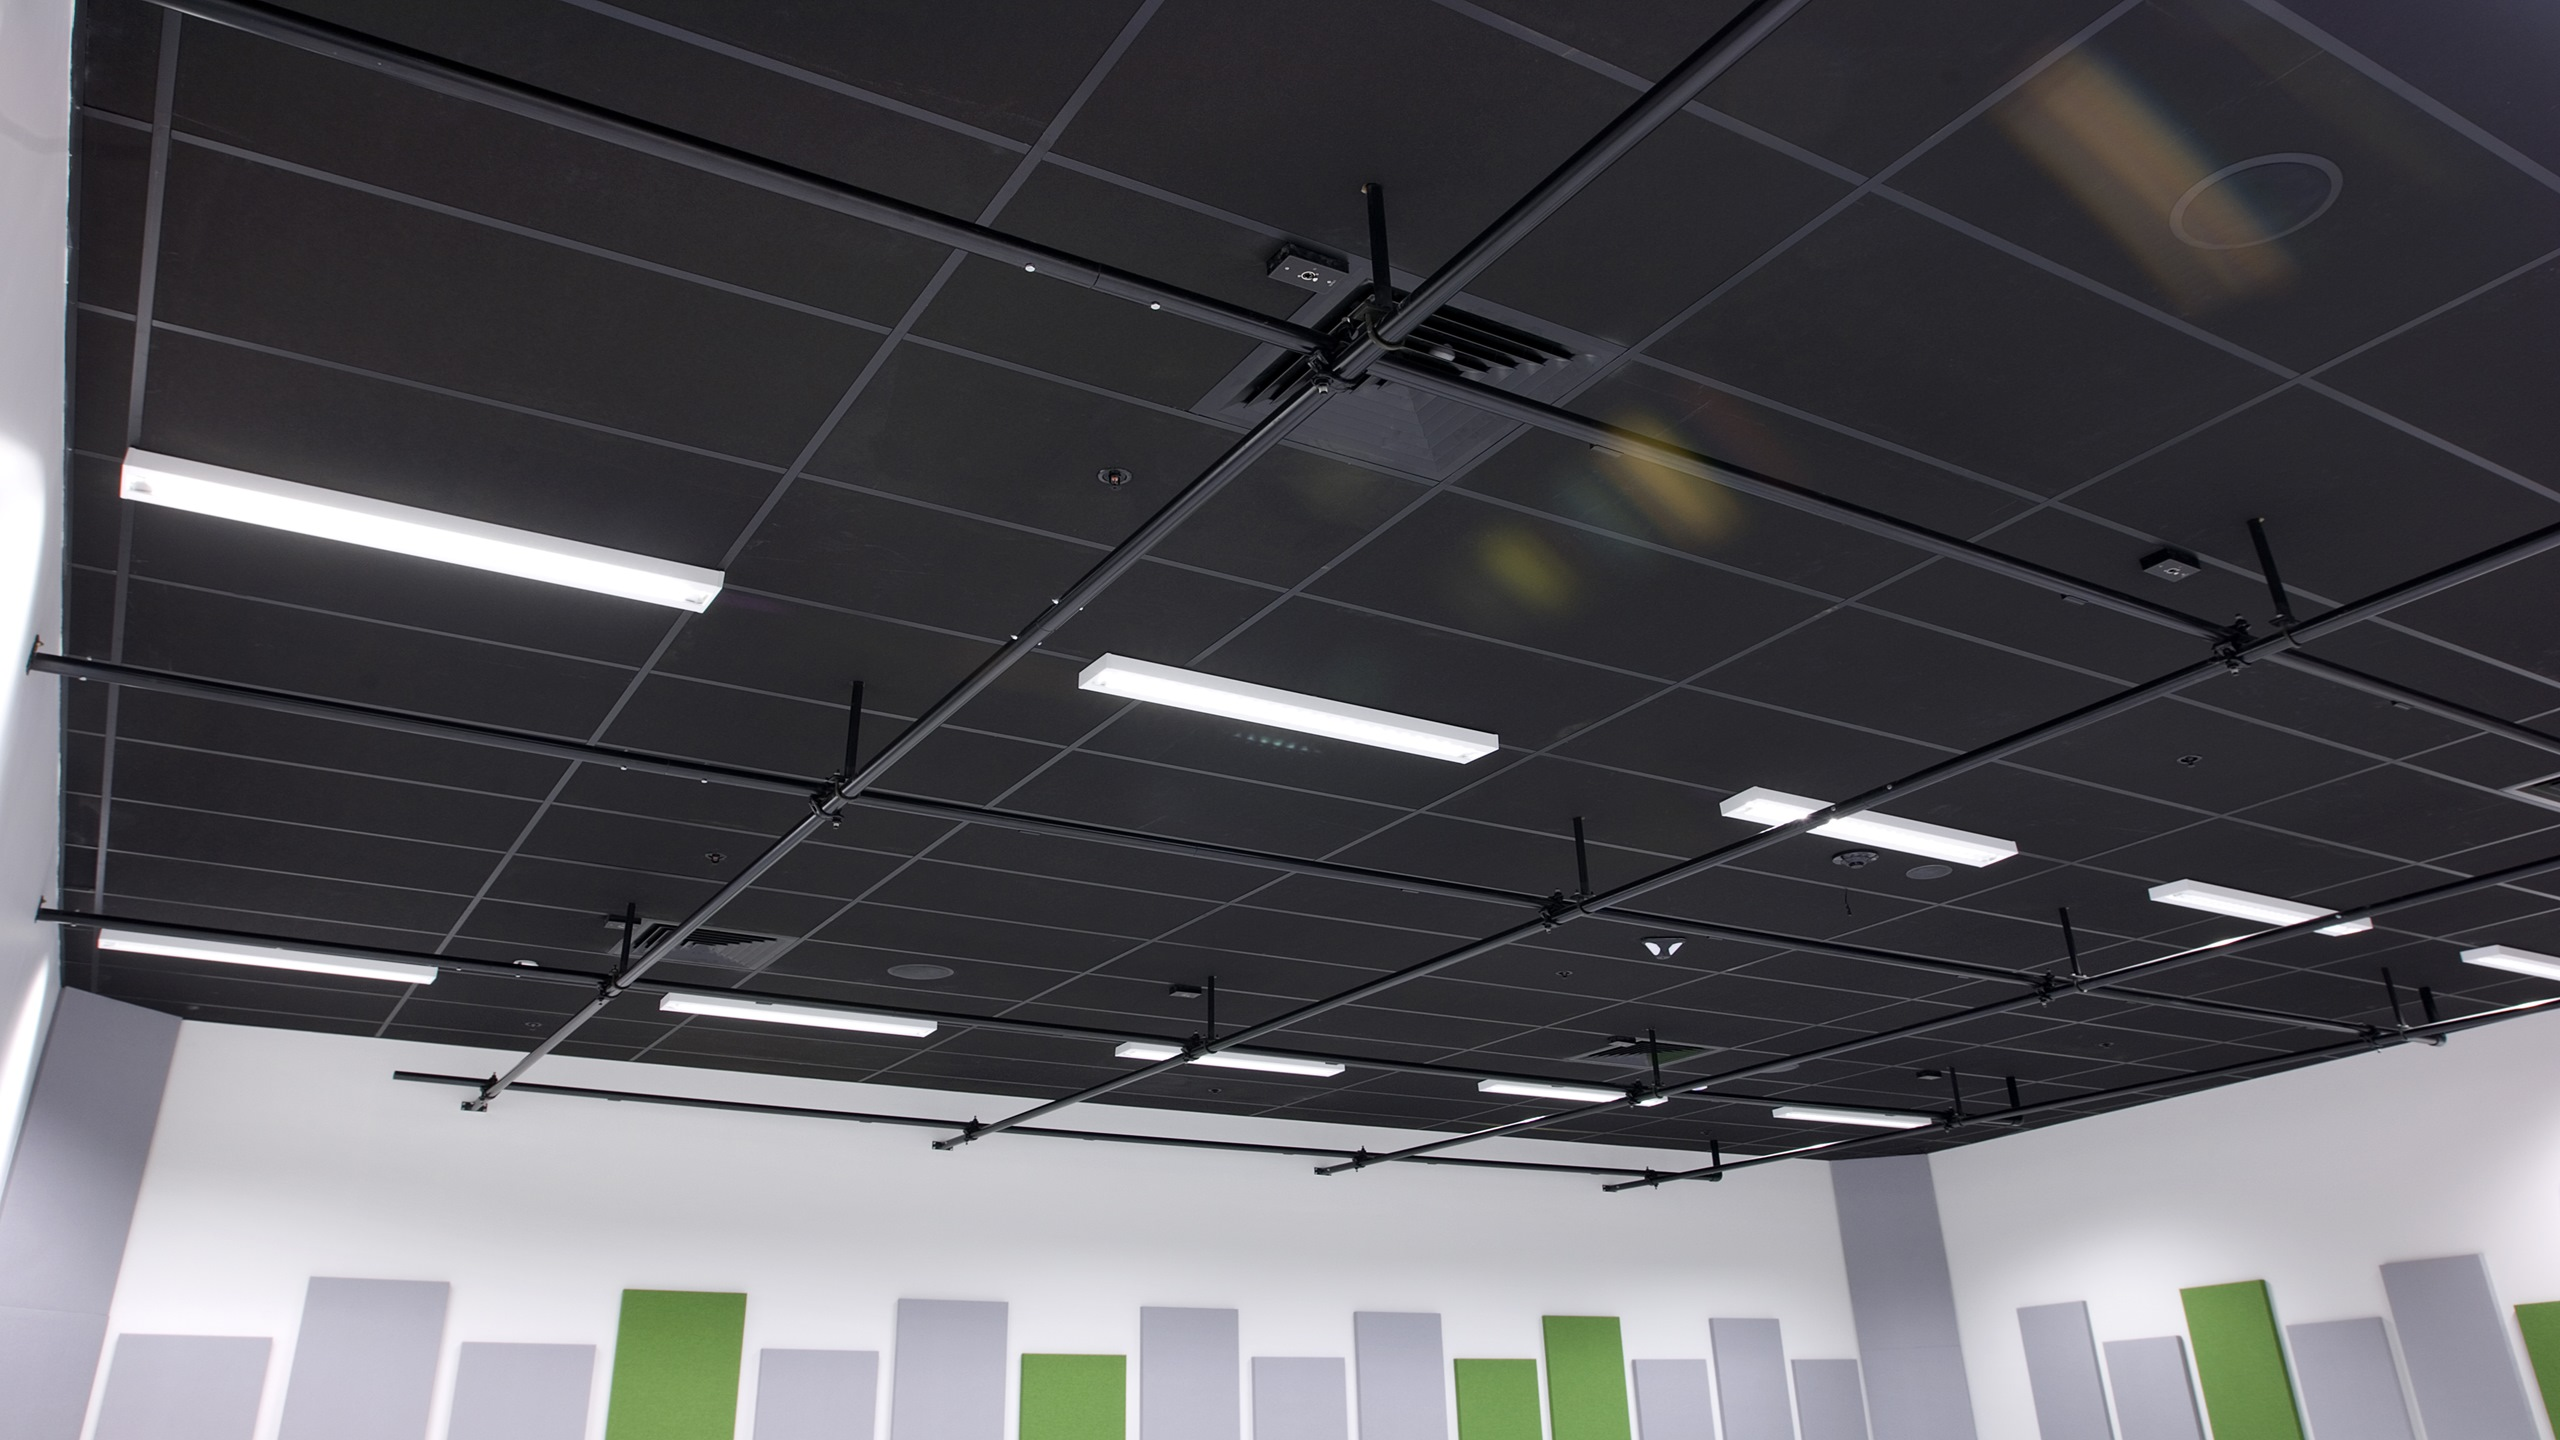 Hobsonville Point Intermediate music room showing  a detail section of the Avant 25 theatre Black ceiling installed into a grid & tile system.